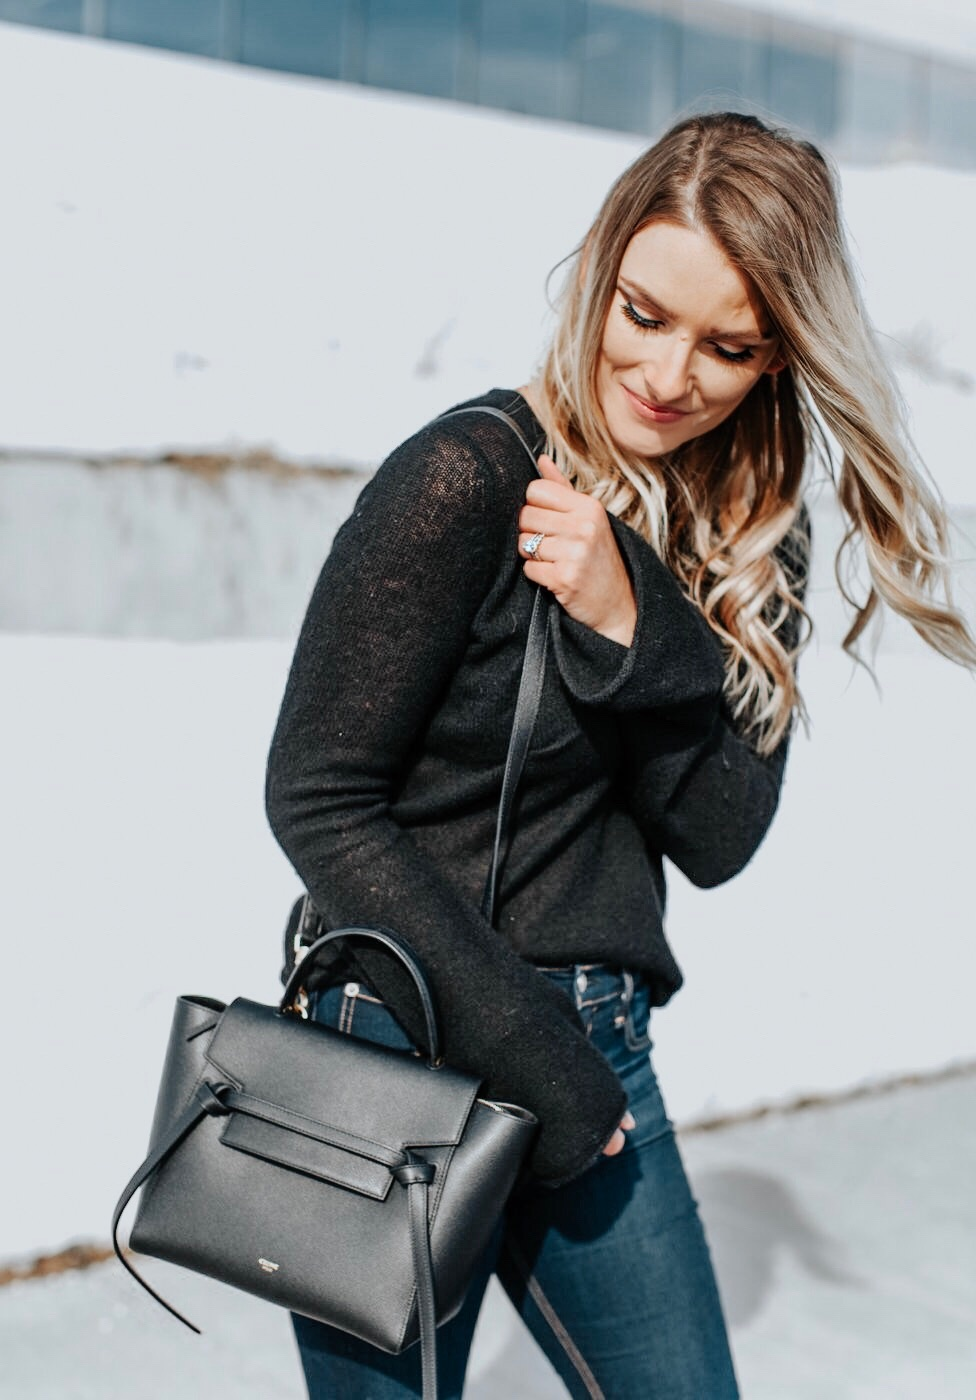 Life With Aco Celine Belt Bag Outfit Life With A Co By Amanda L Conquer